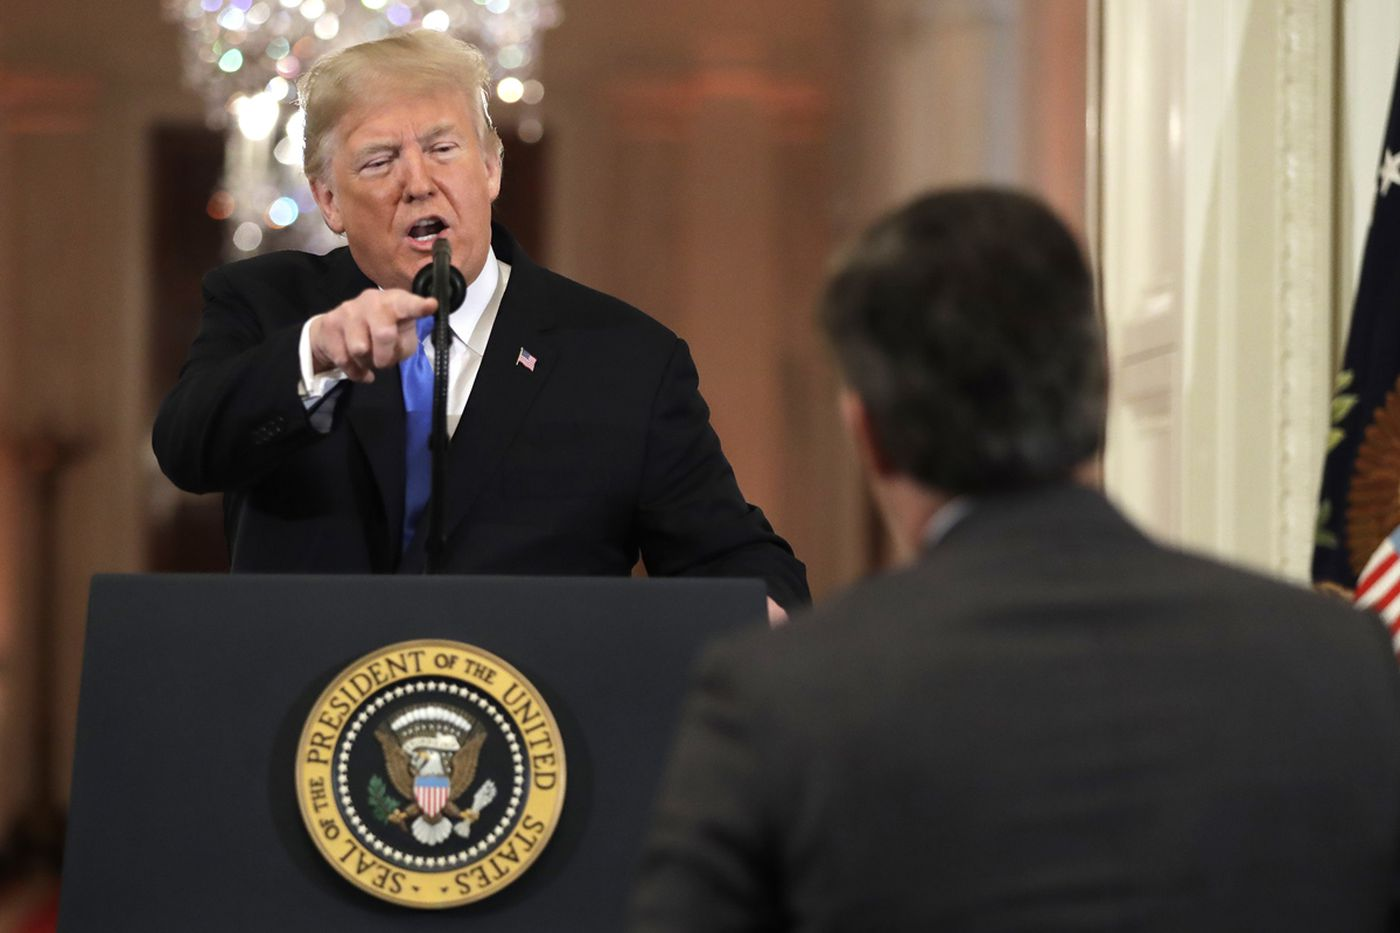 CNN's Jim Acosta spars with Trump in heated exchange